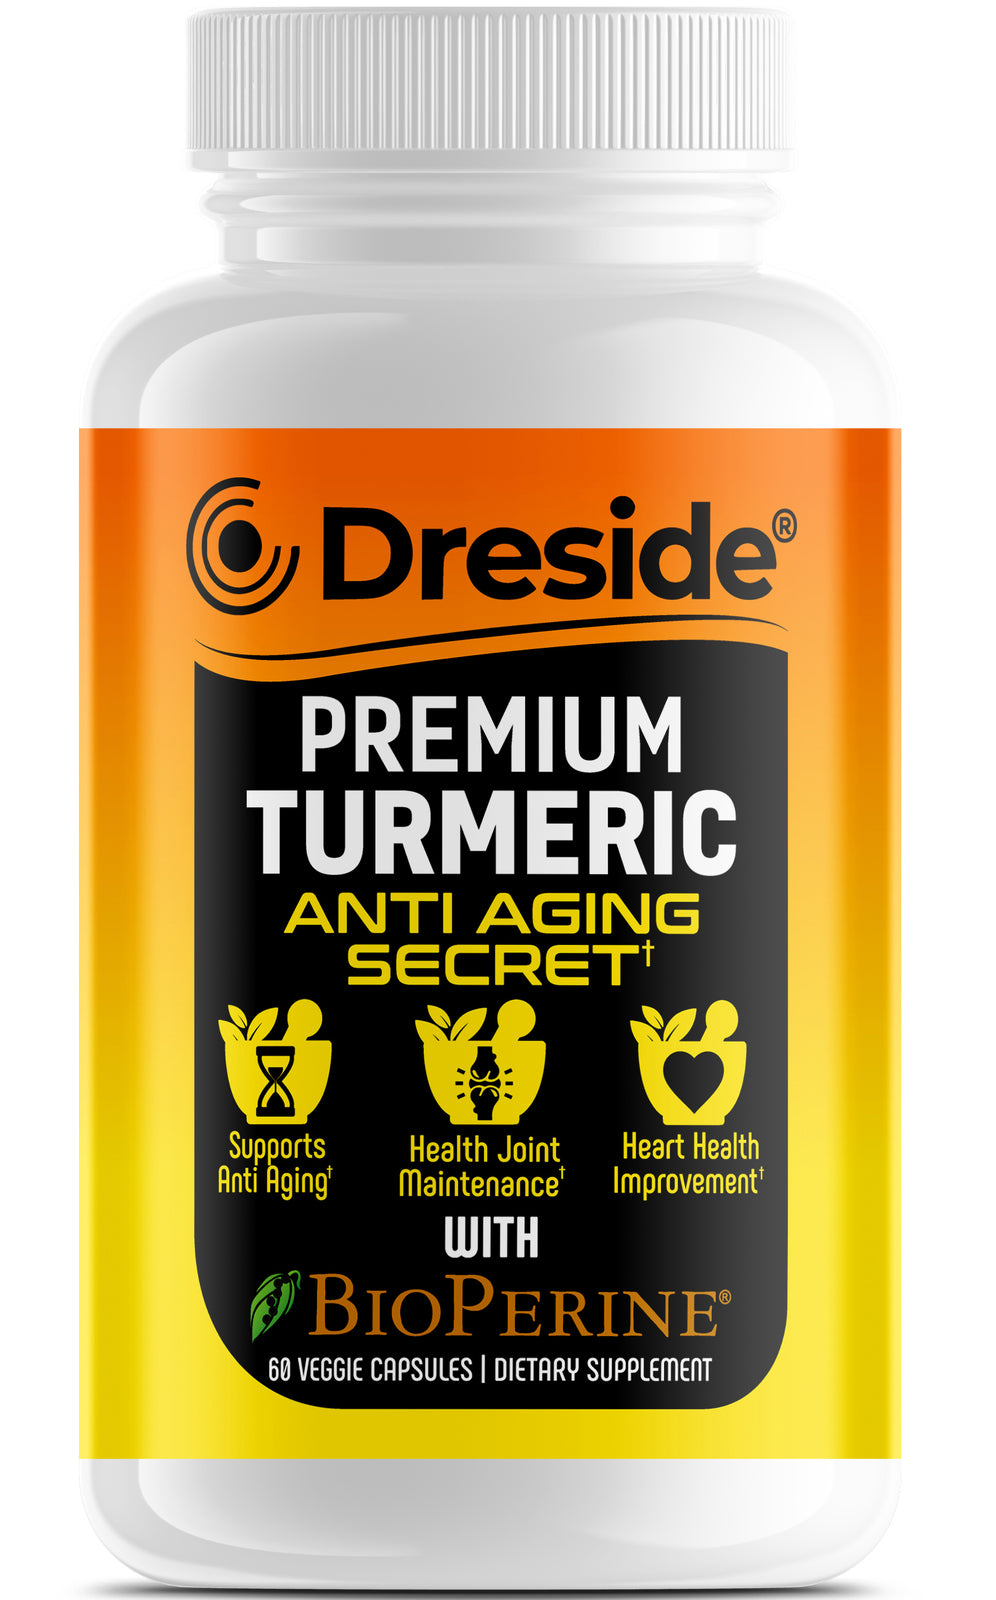 Premium Turmeric Antiaging Secret